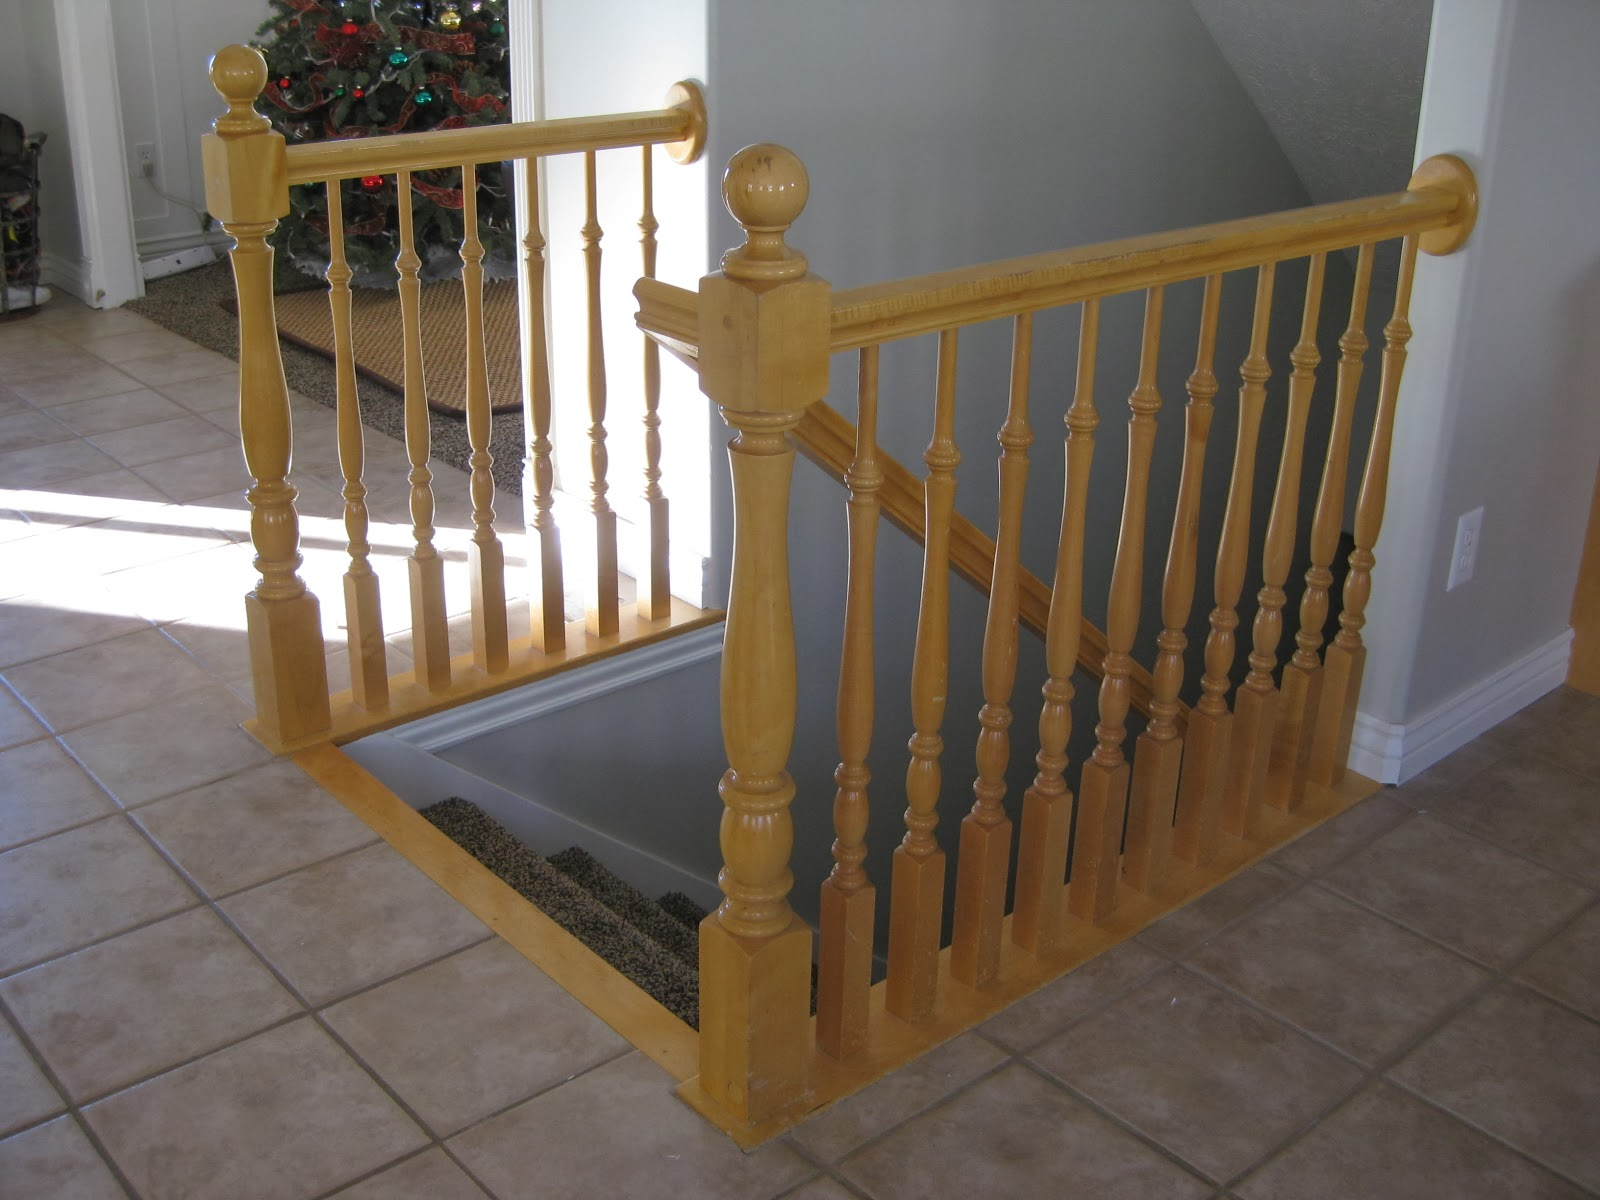 DIY Stair Banister Tutorial   Part 1, Building Around Existing Newel Post